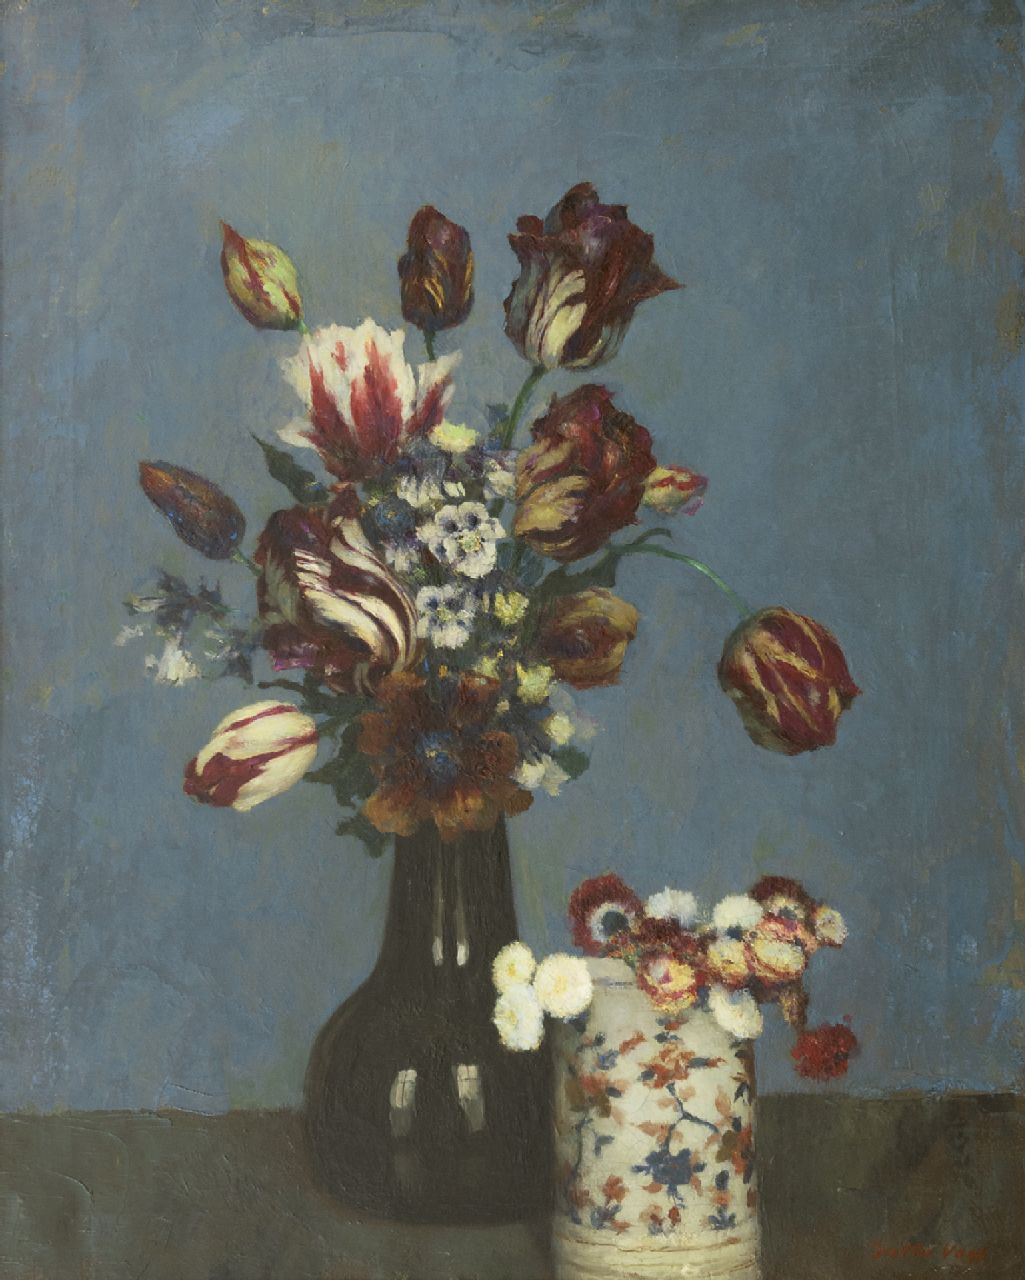 Walter Vaes | Still life with flowers, oil on canvas, 67.9 x 54.5 cm, signed l.r.